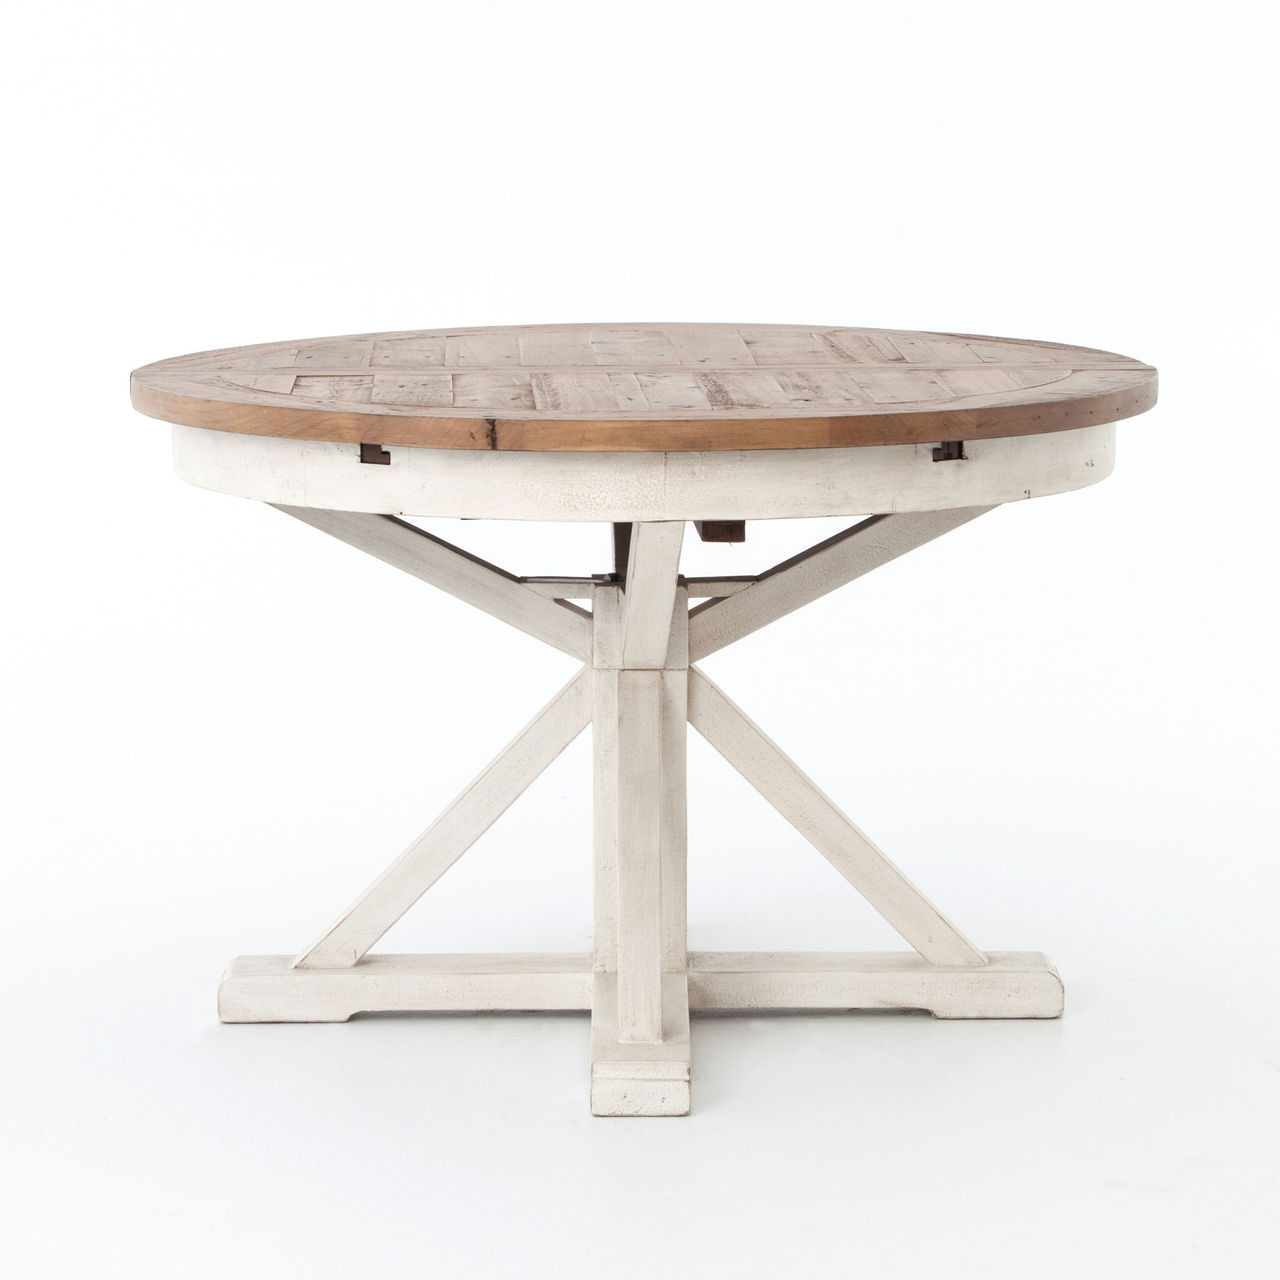 Expandable Round Dining Table For Sale Cintra Reclaimed Wood White Expandable Round Dining Table